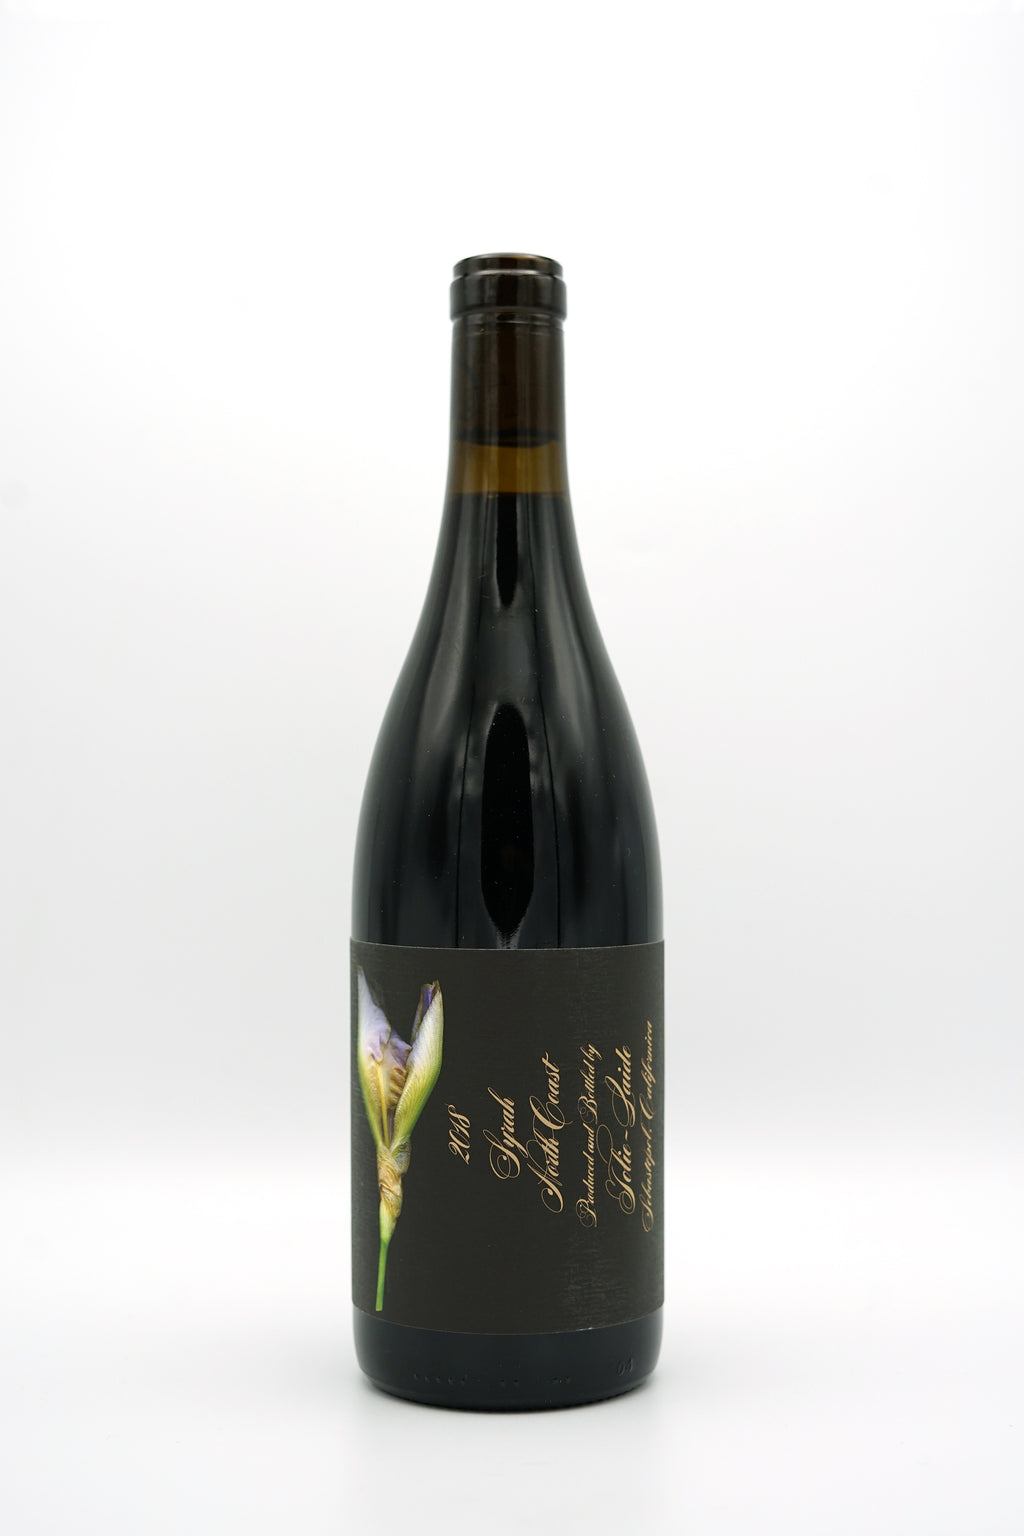 Syrah North Coast 2018 - Jolie-Laide